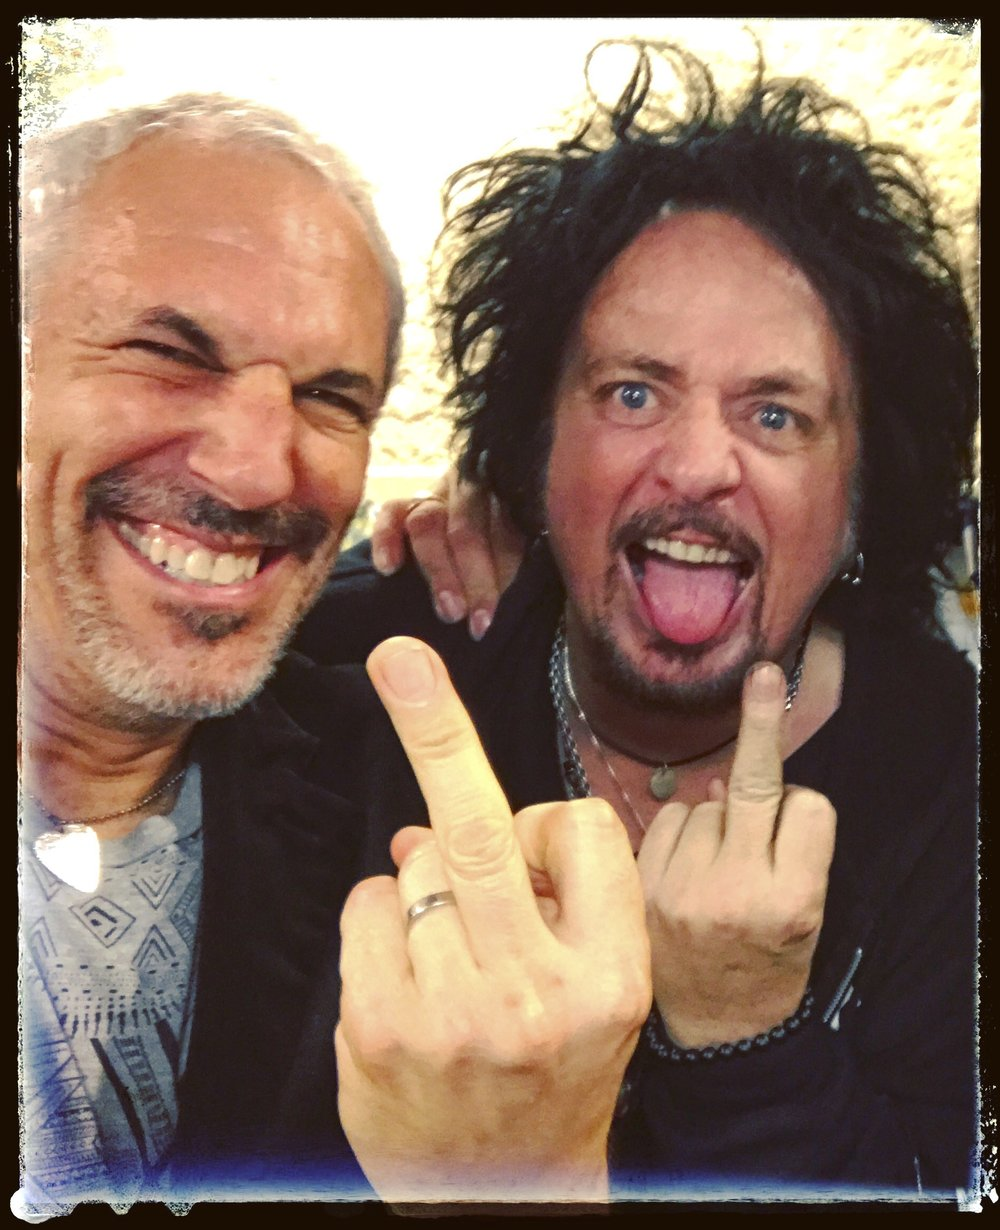 Steve Lukather's pic for Crosby